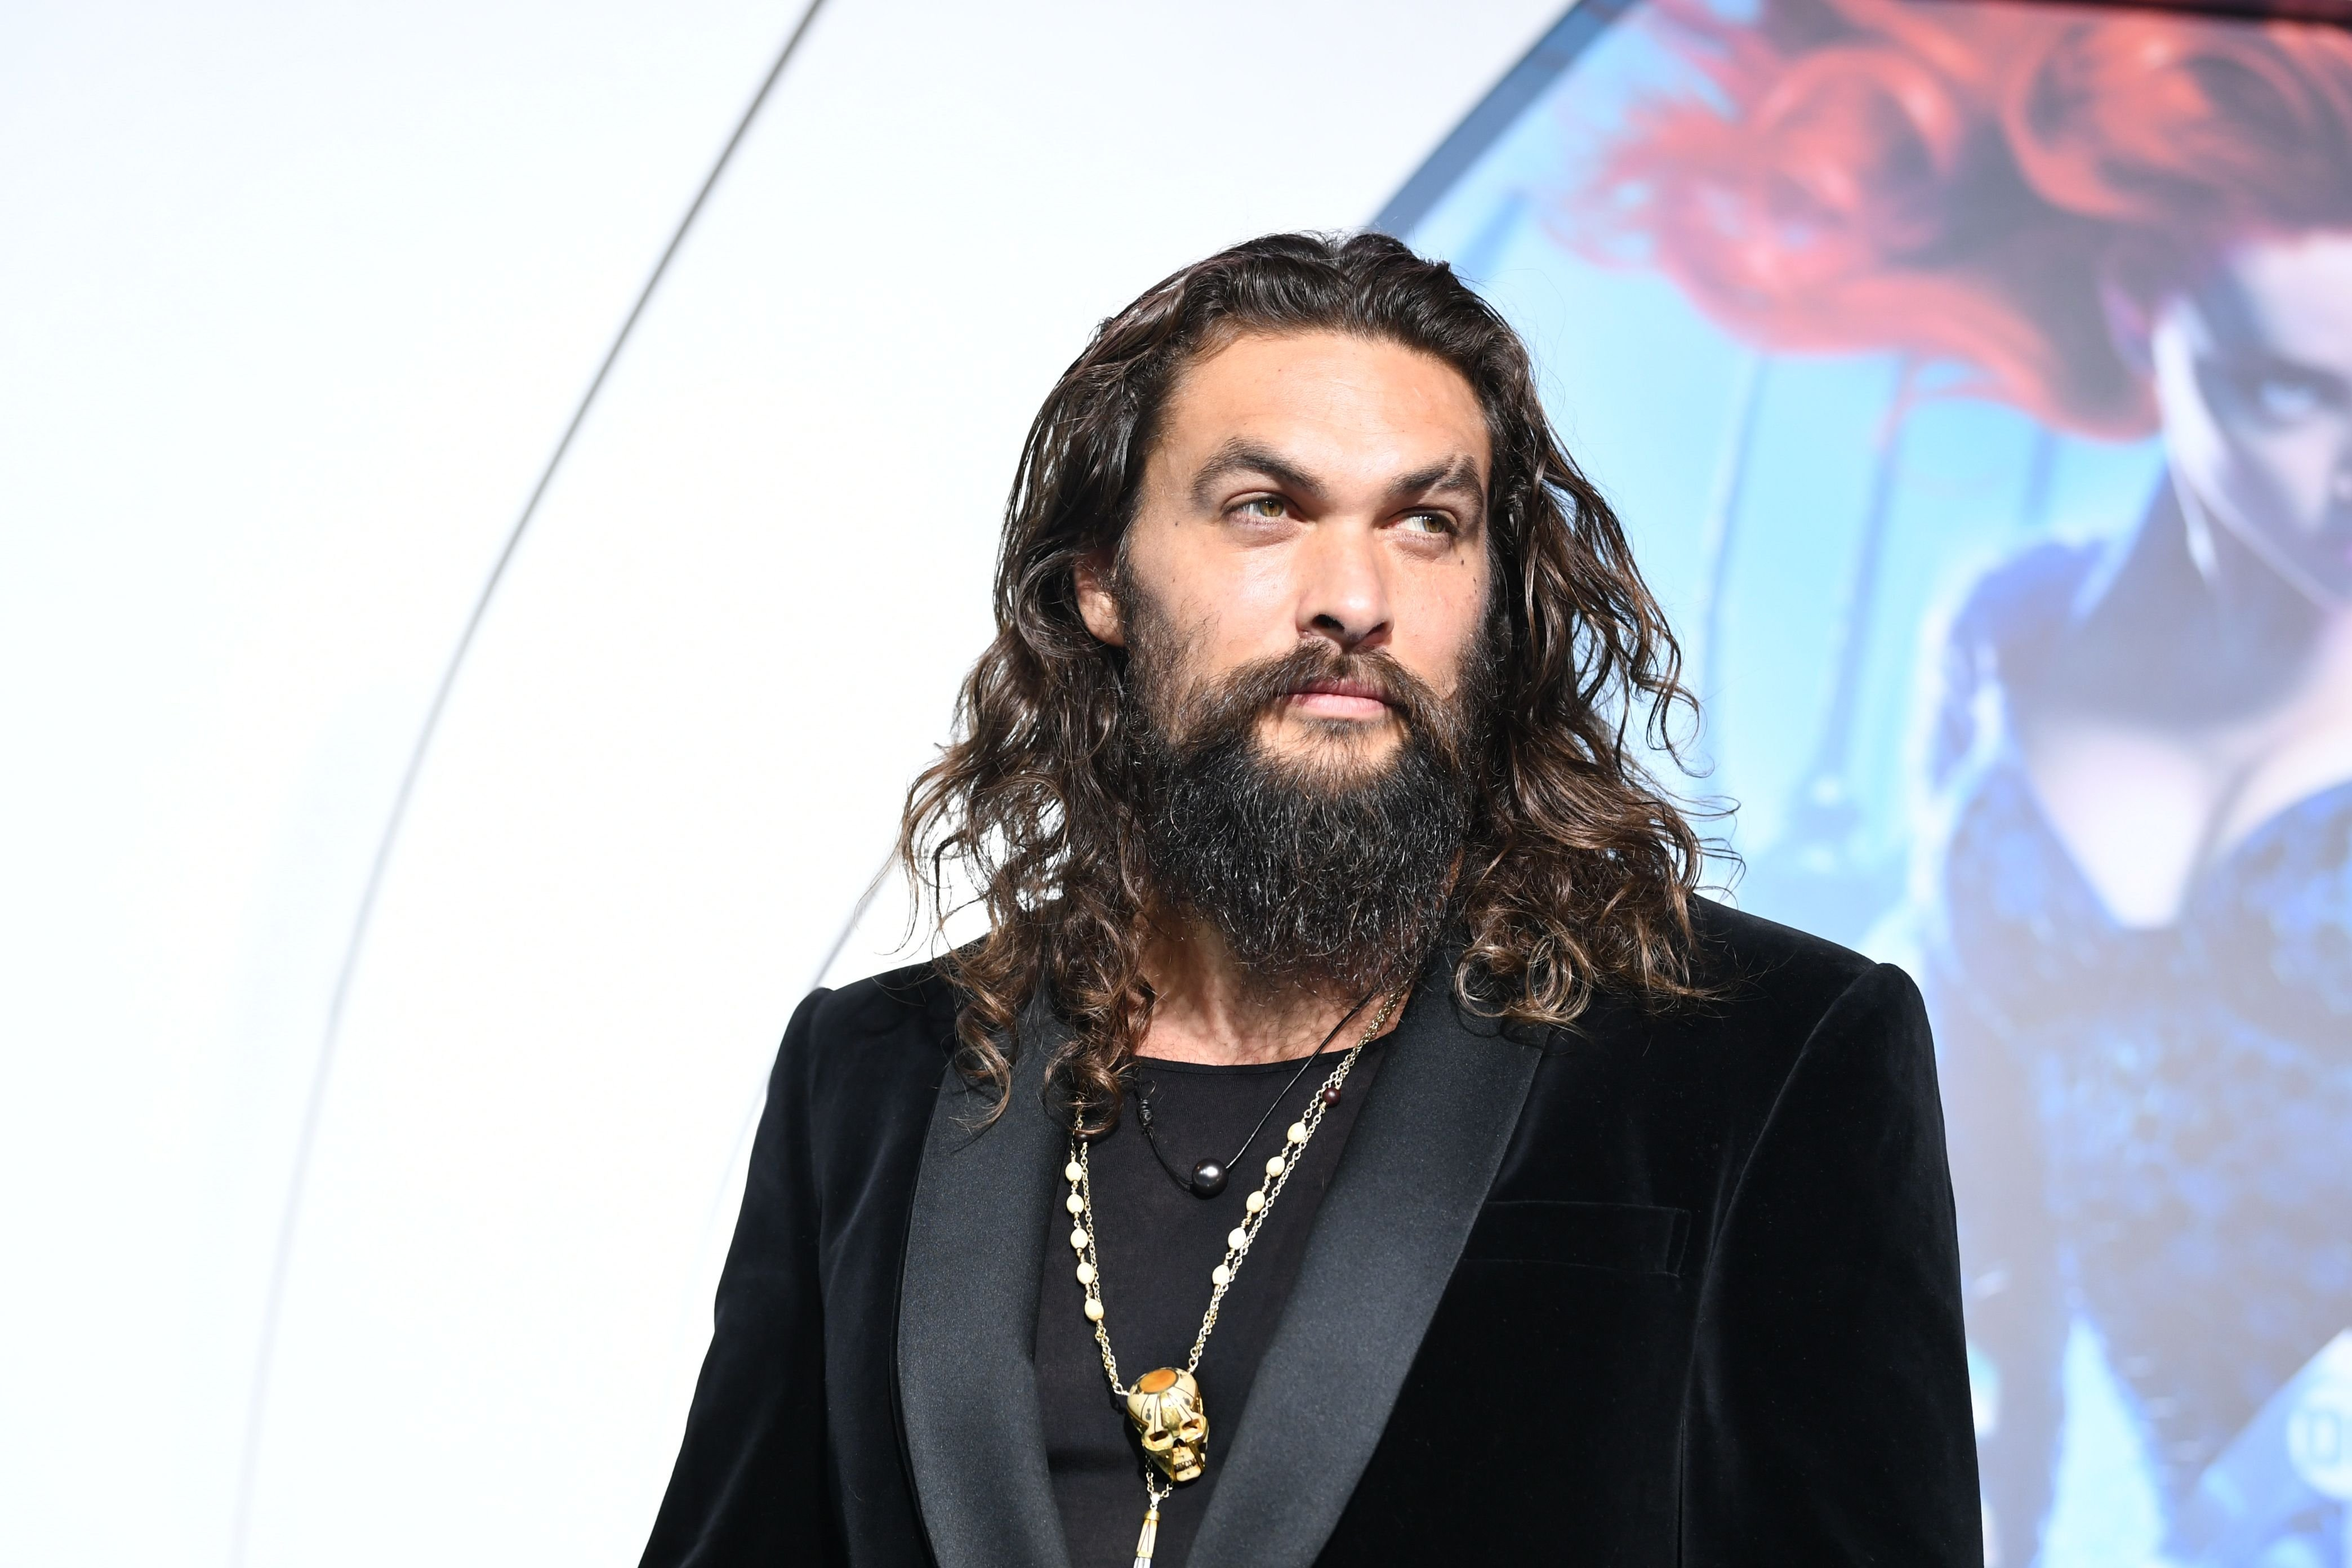 """Jason Momoa at the premiere of Warner Bros. Pictures' """"Aquaman"""" at the Chinese Theatre on December 12, 2018 in Los Angeles, California. 